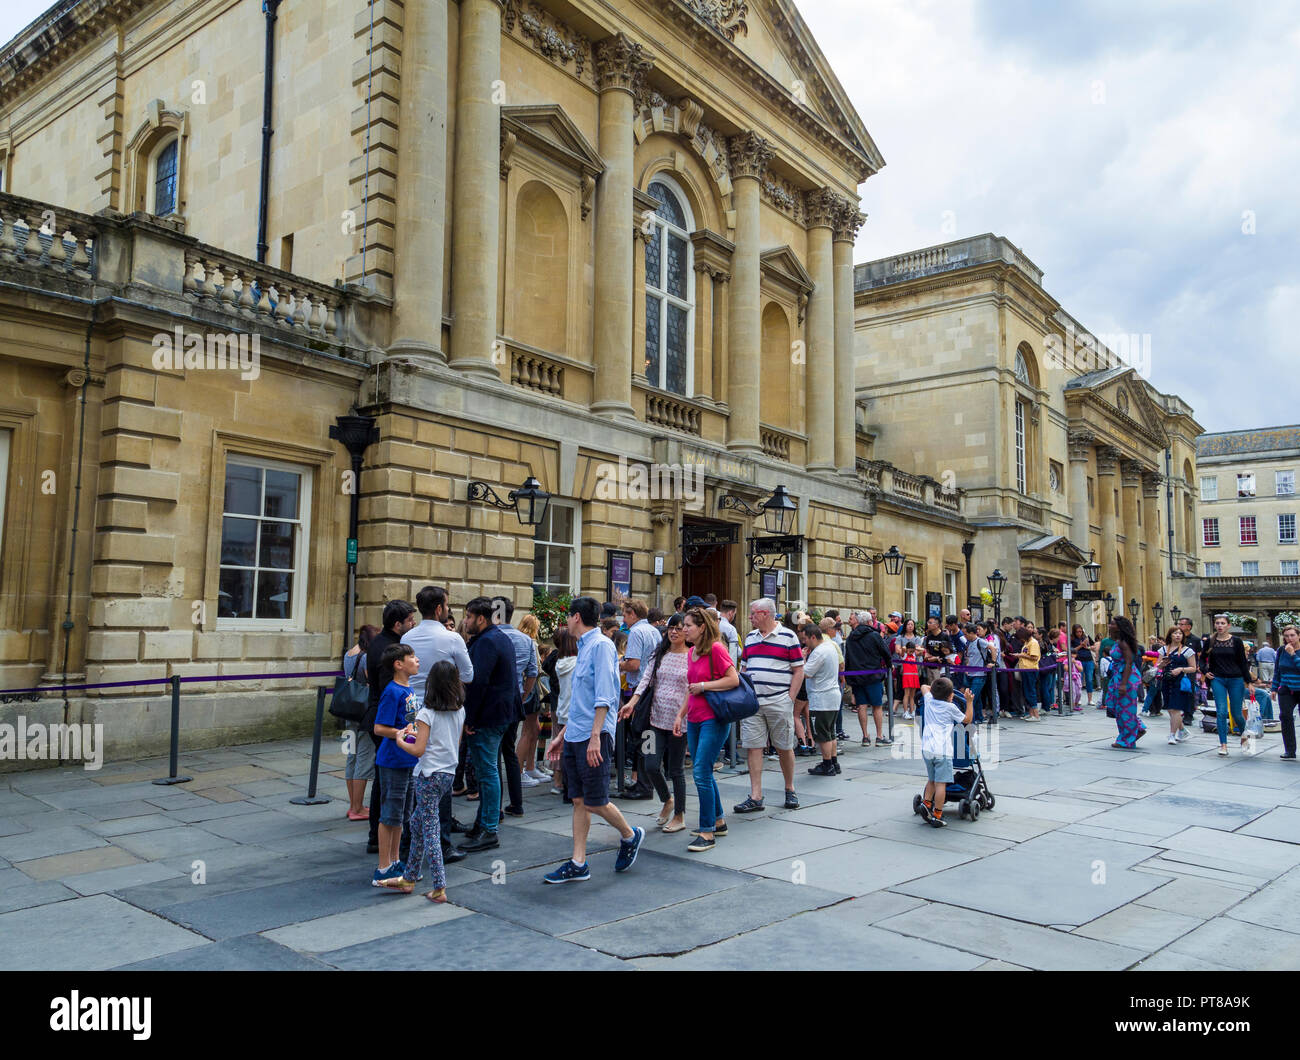 People queueing to visit the Roman Baths, Bath, Somerset, England, UK. Stock Photo